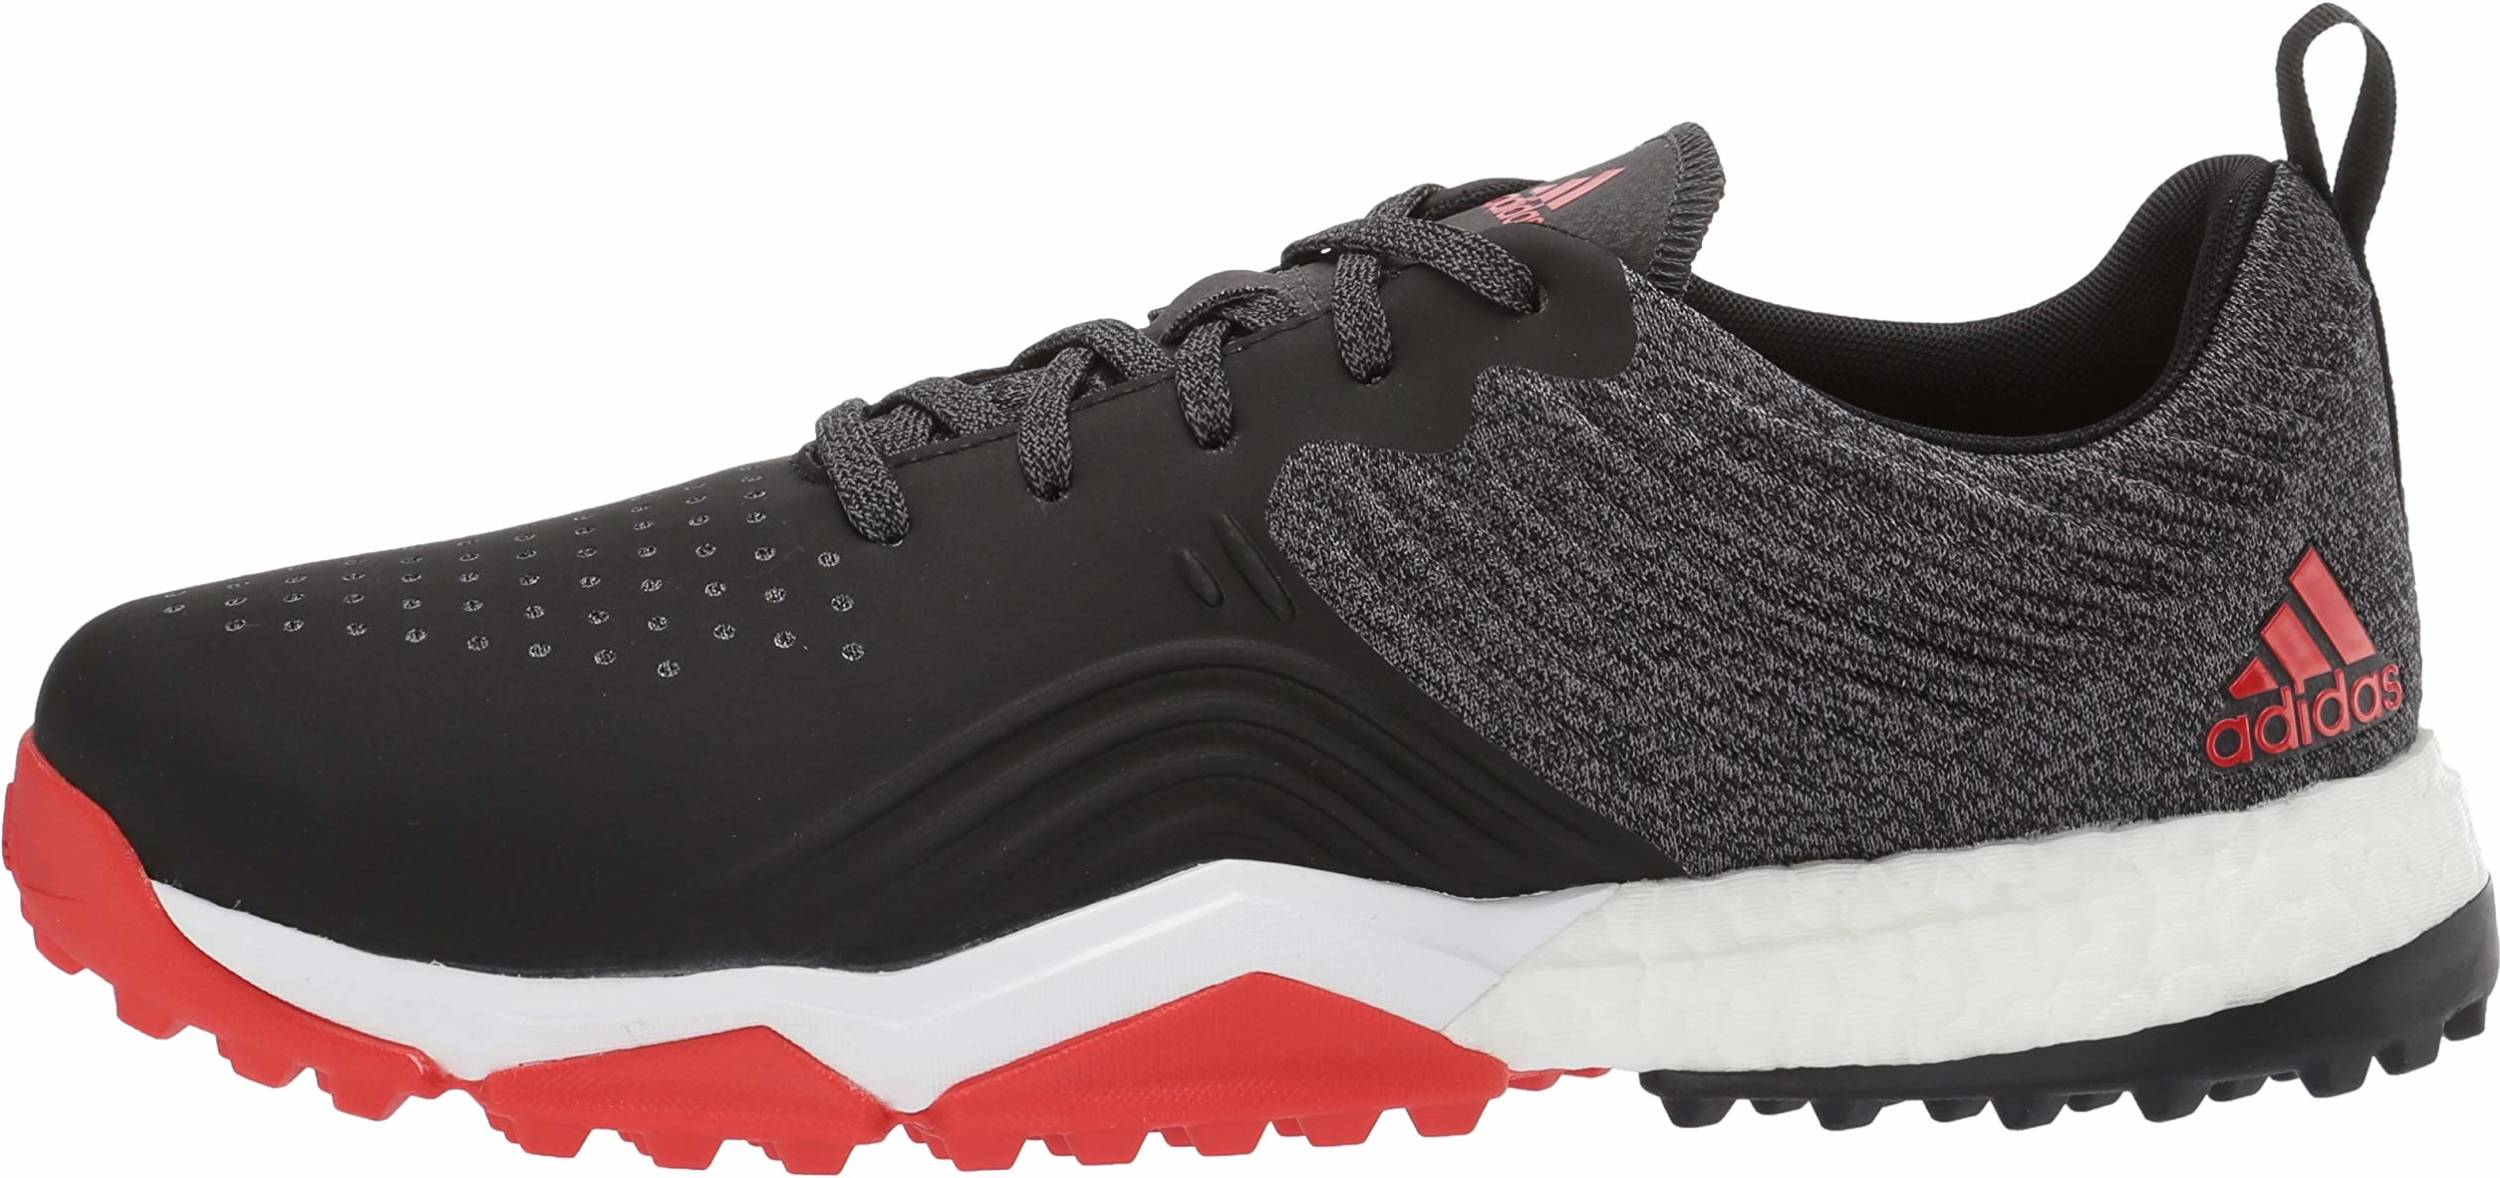 Adidas Adipower 4orged S - Deals (£45), Facts, Reviews (2021) | RunRepeat